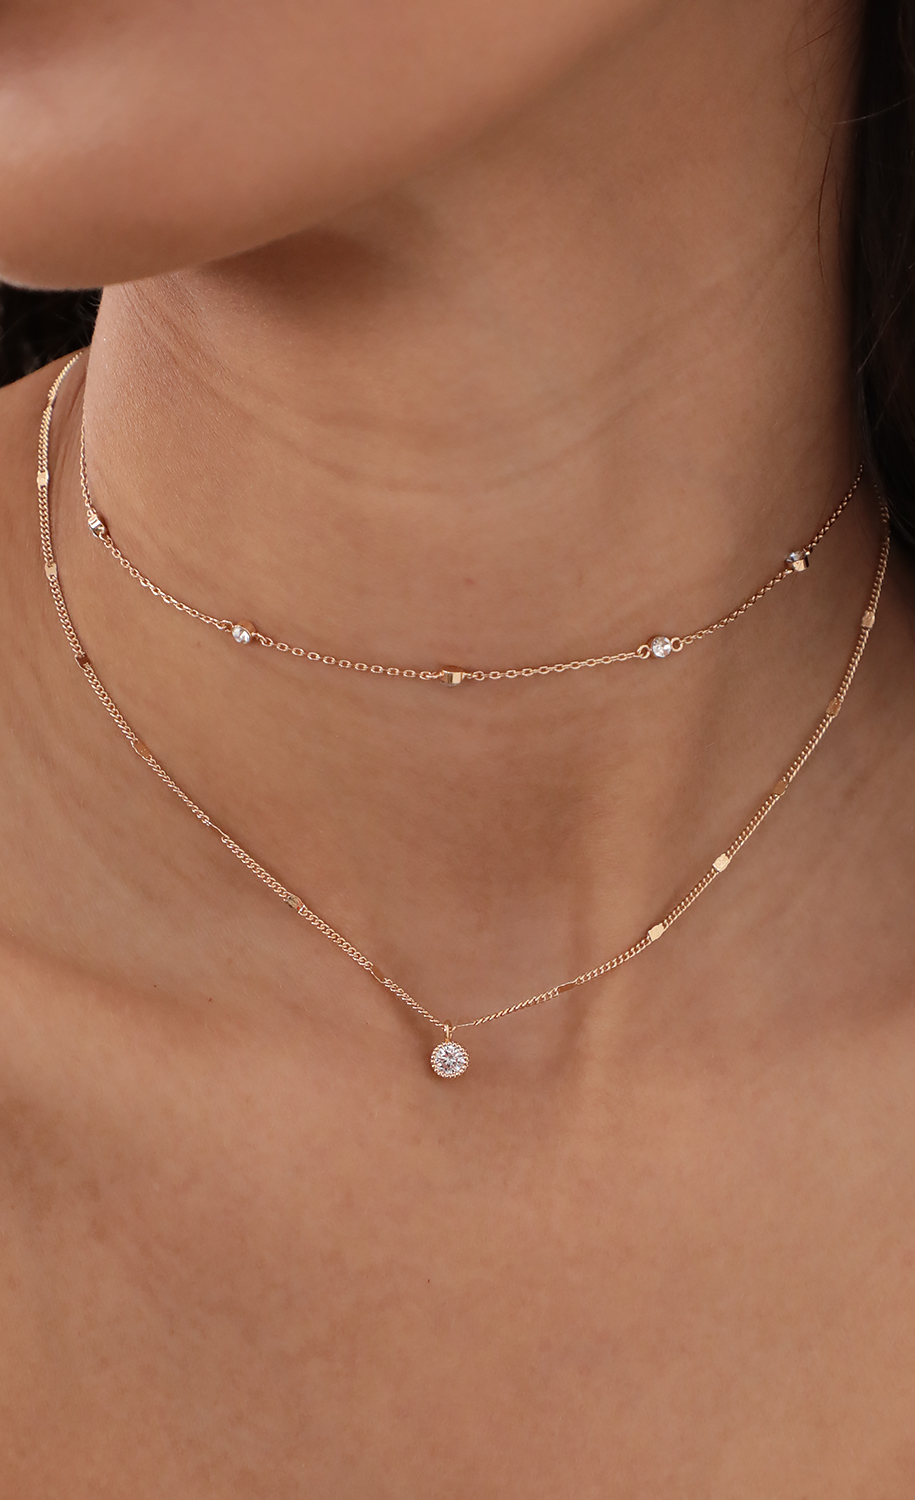 Klhoe Double Layered Crystal necklace Set